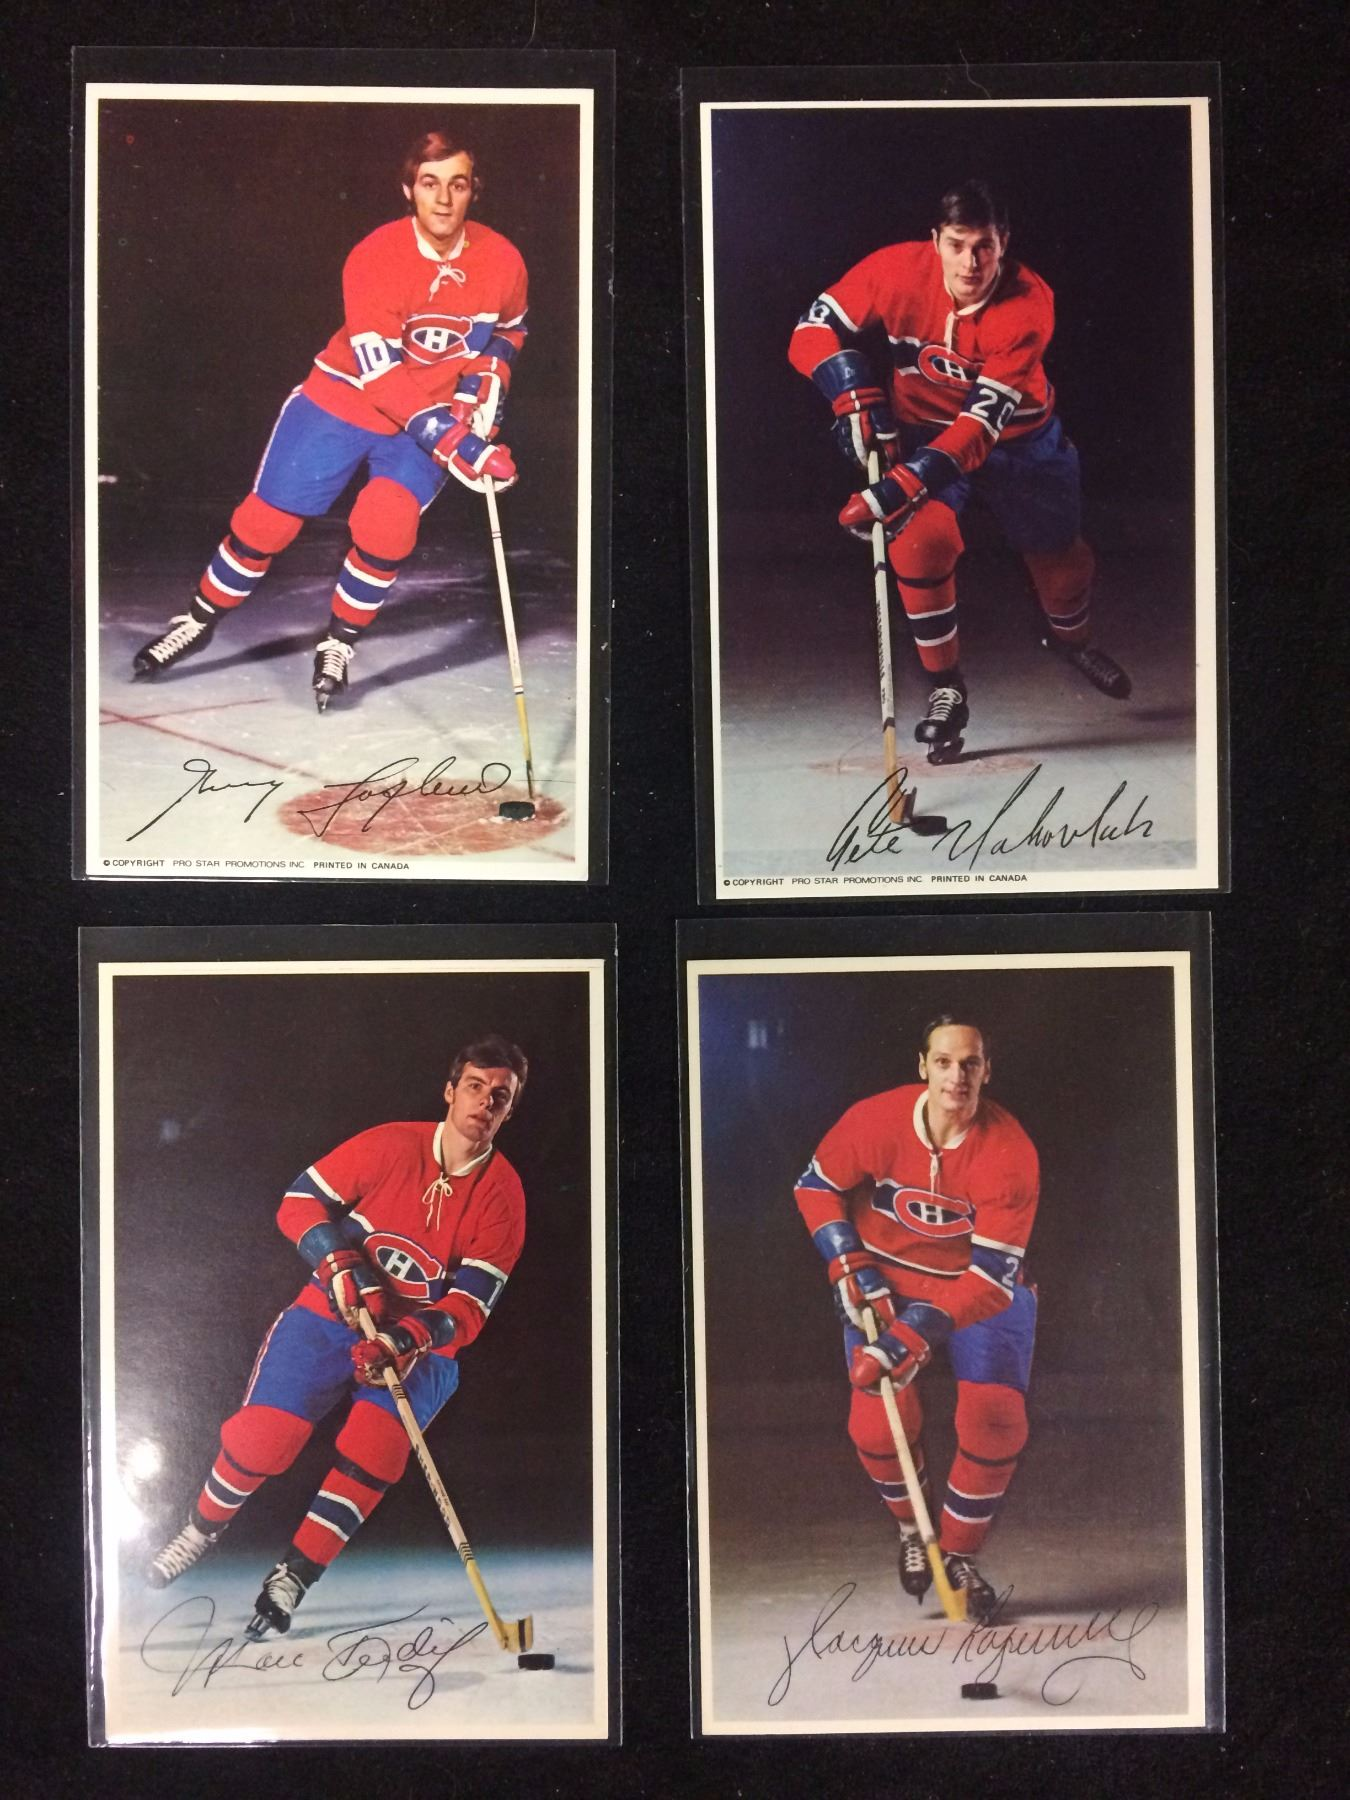 Other variant vintage montreal canadians apologise, but